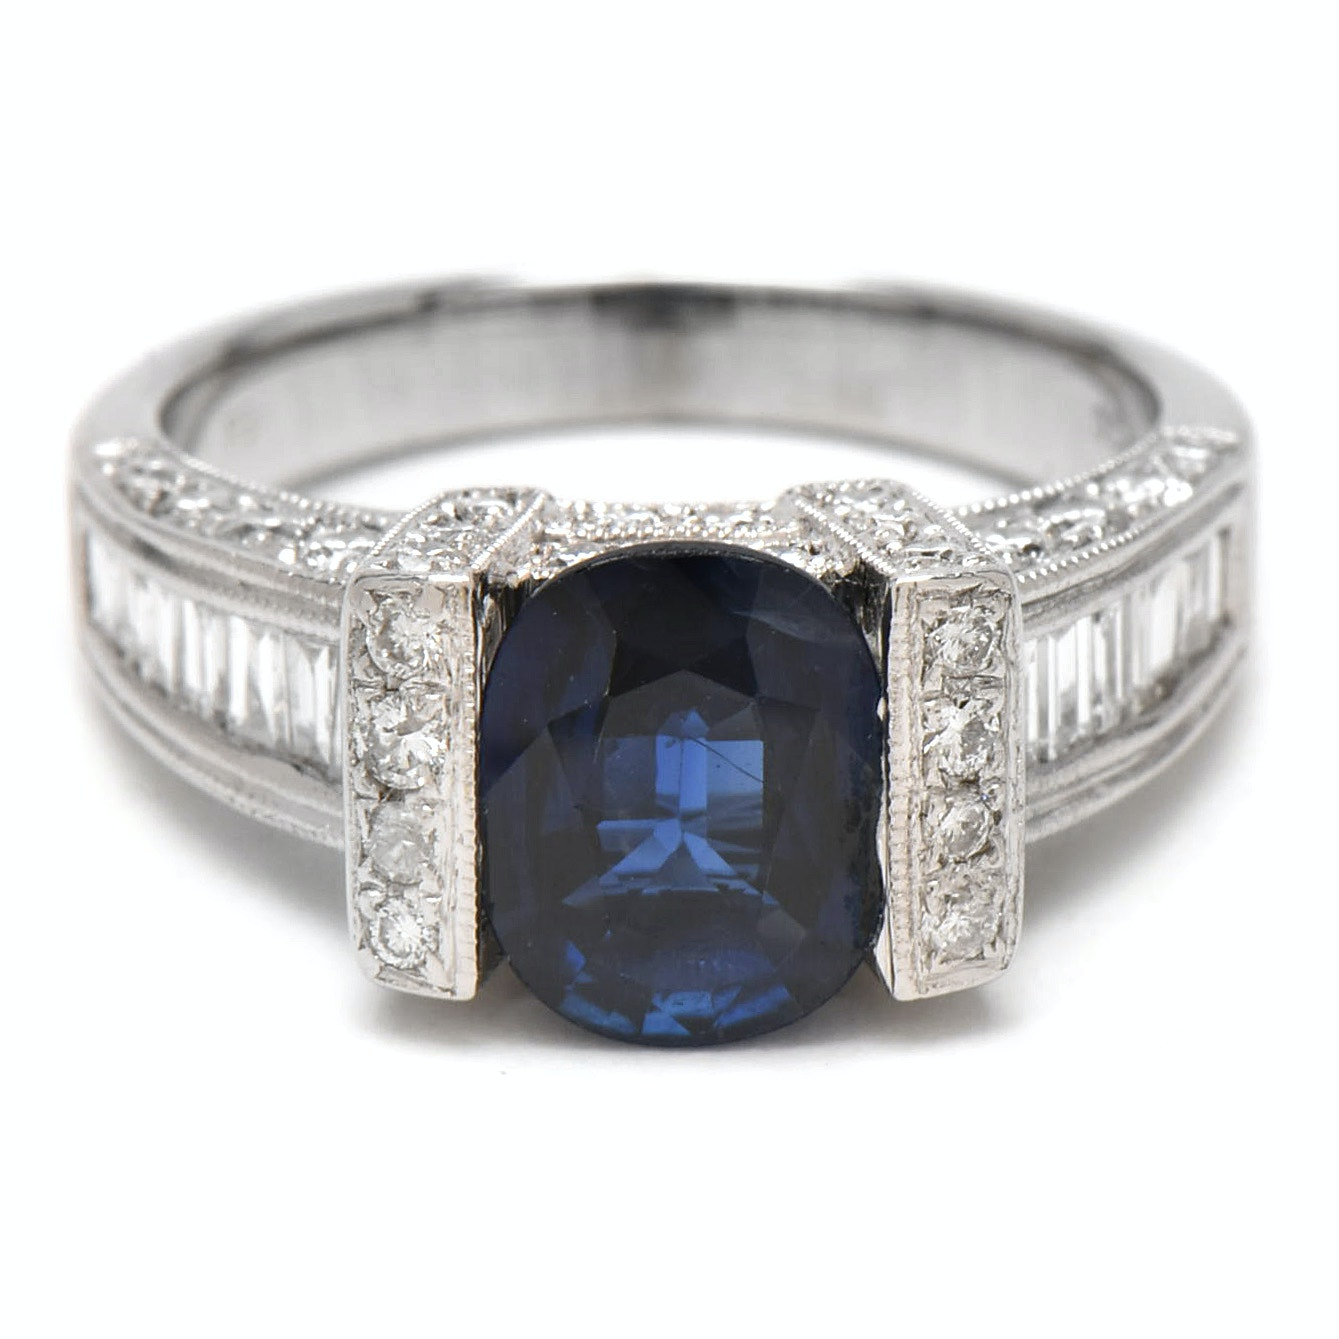 18K White Gold 1.75 CT Blue Sapphire and 1.51 CTW Diamond Ring